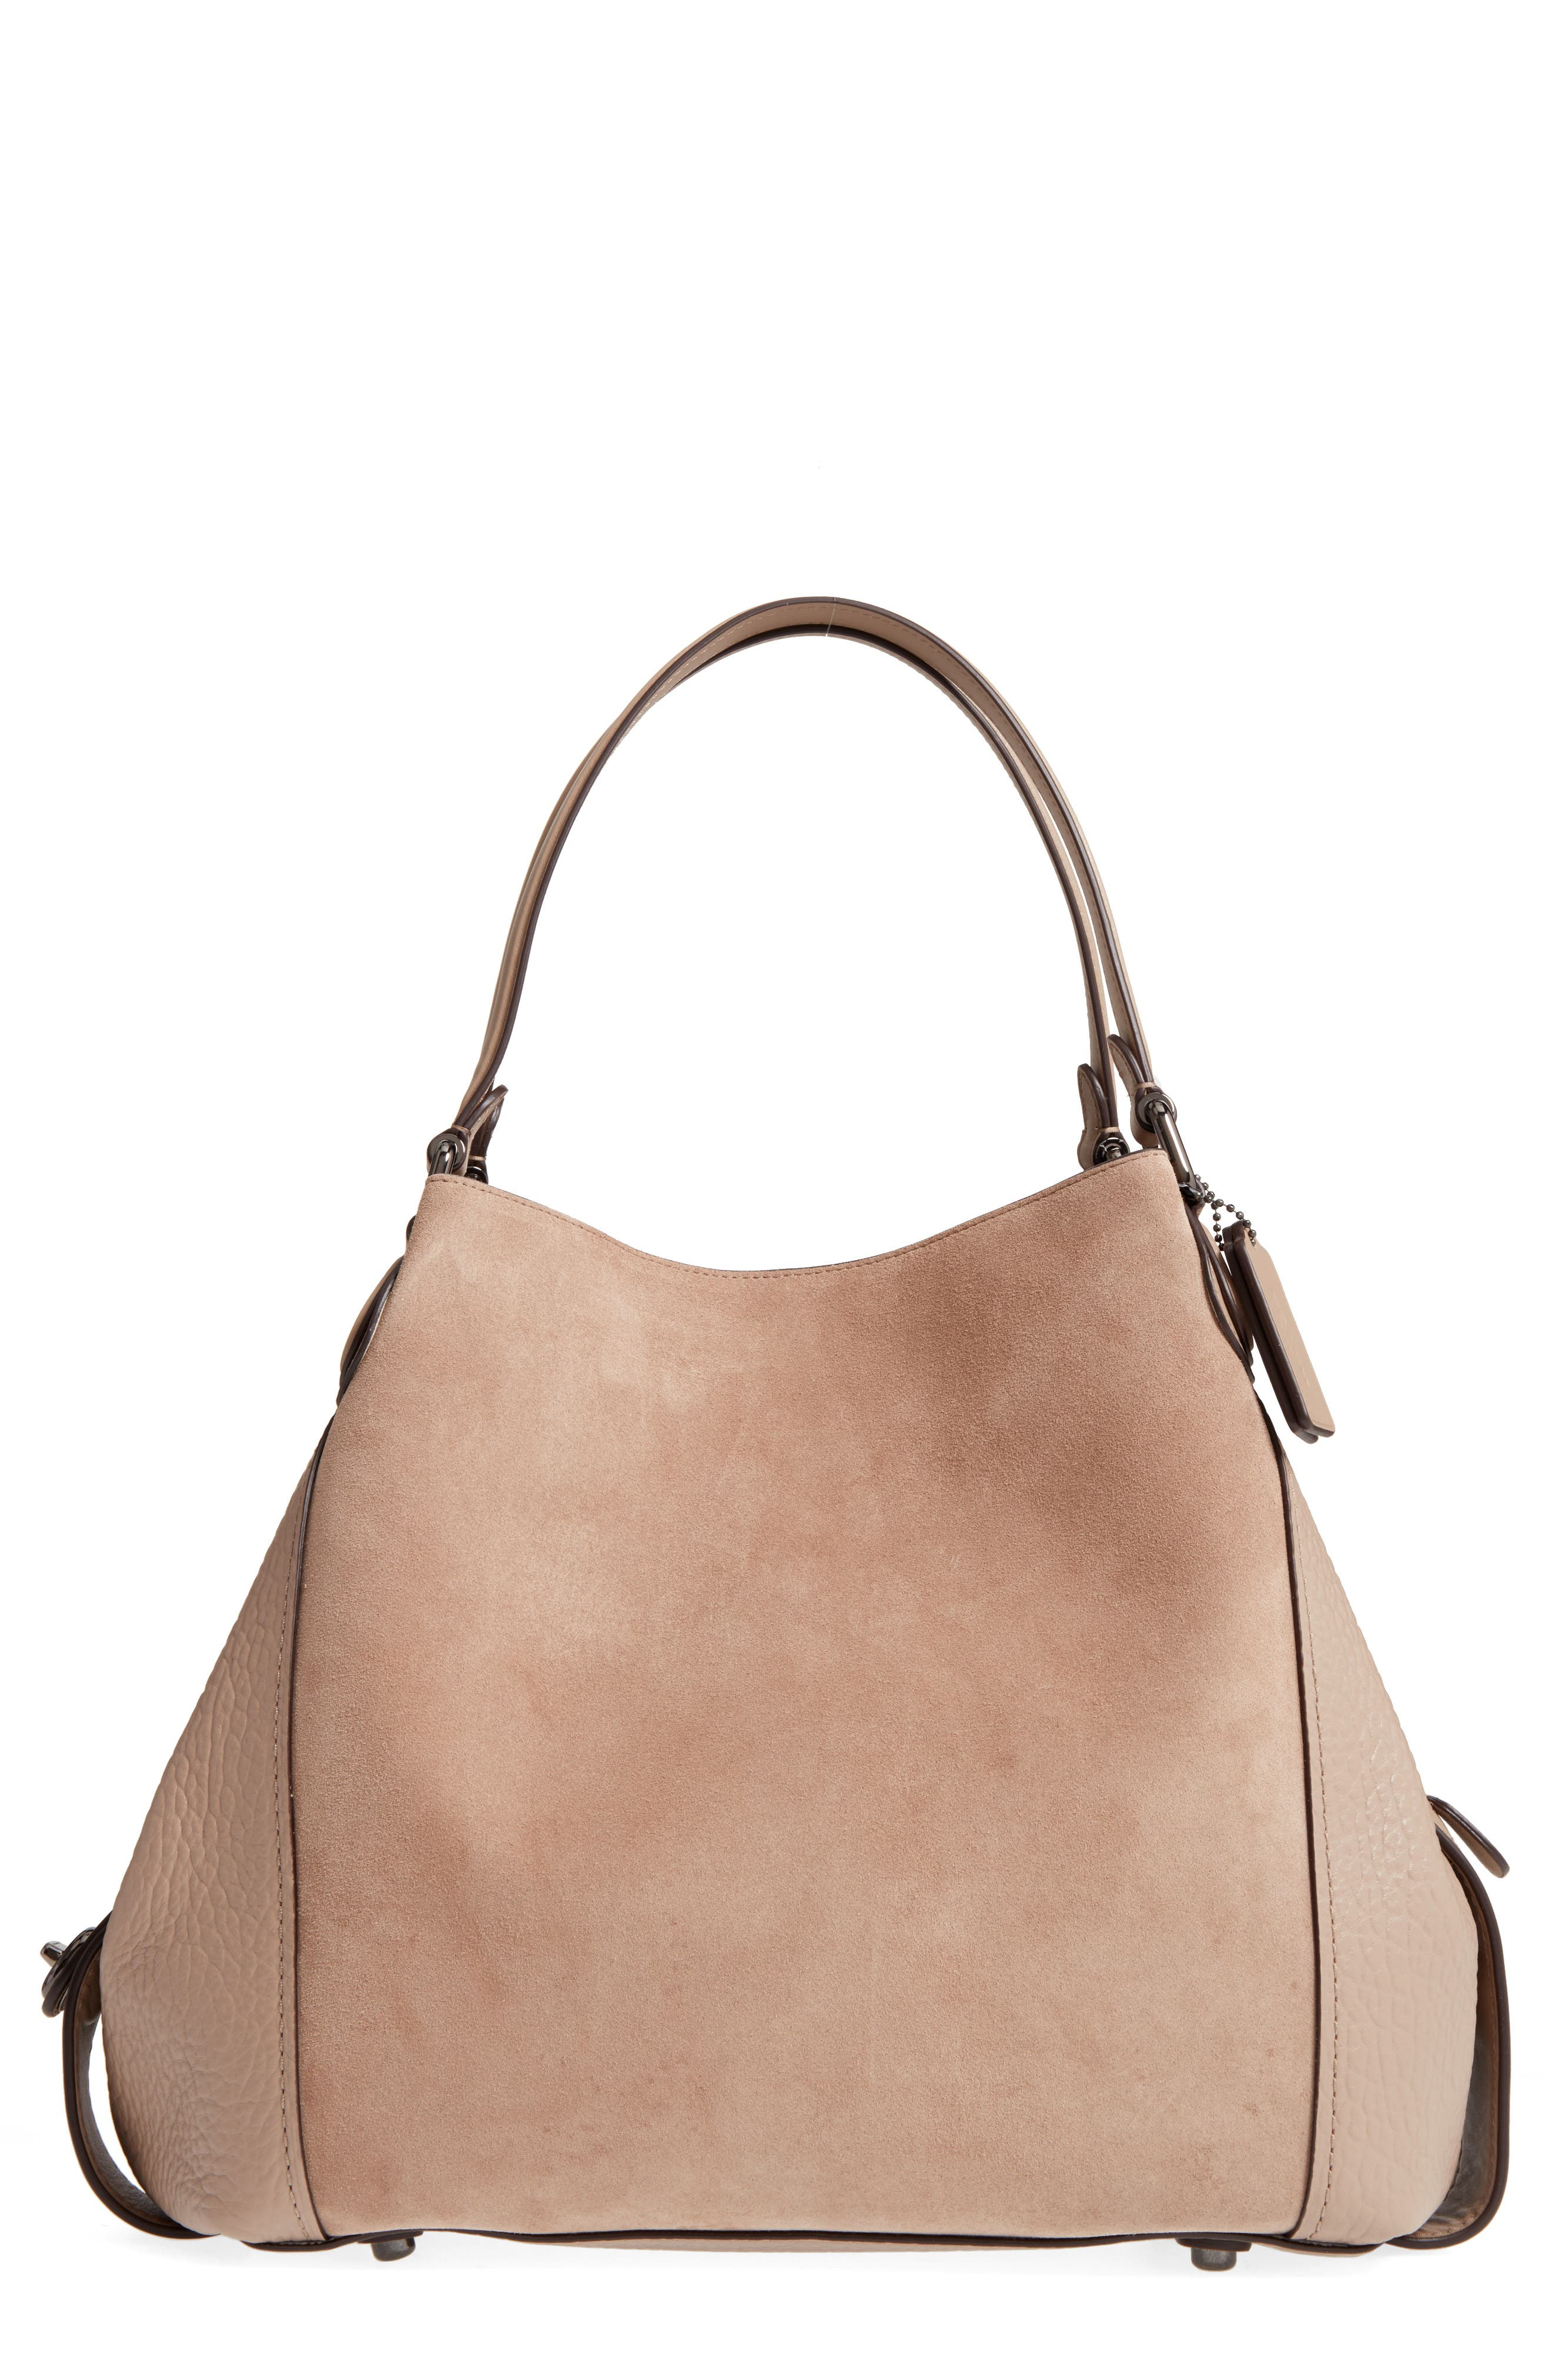 Alternate Image 1 Selected - COACH Edie Suede & Leather Shoulder Bag